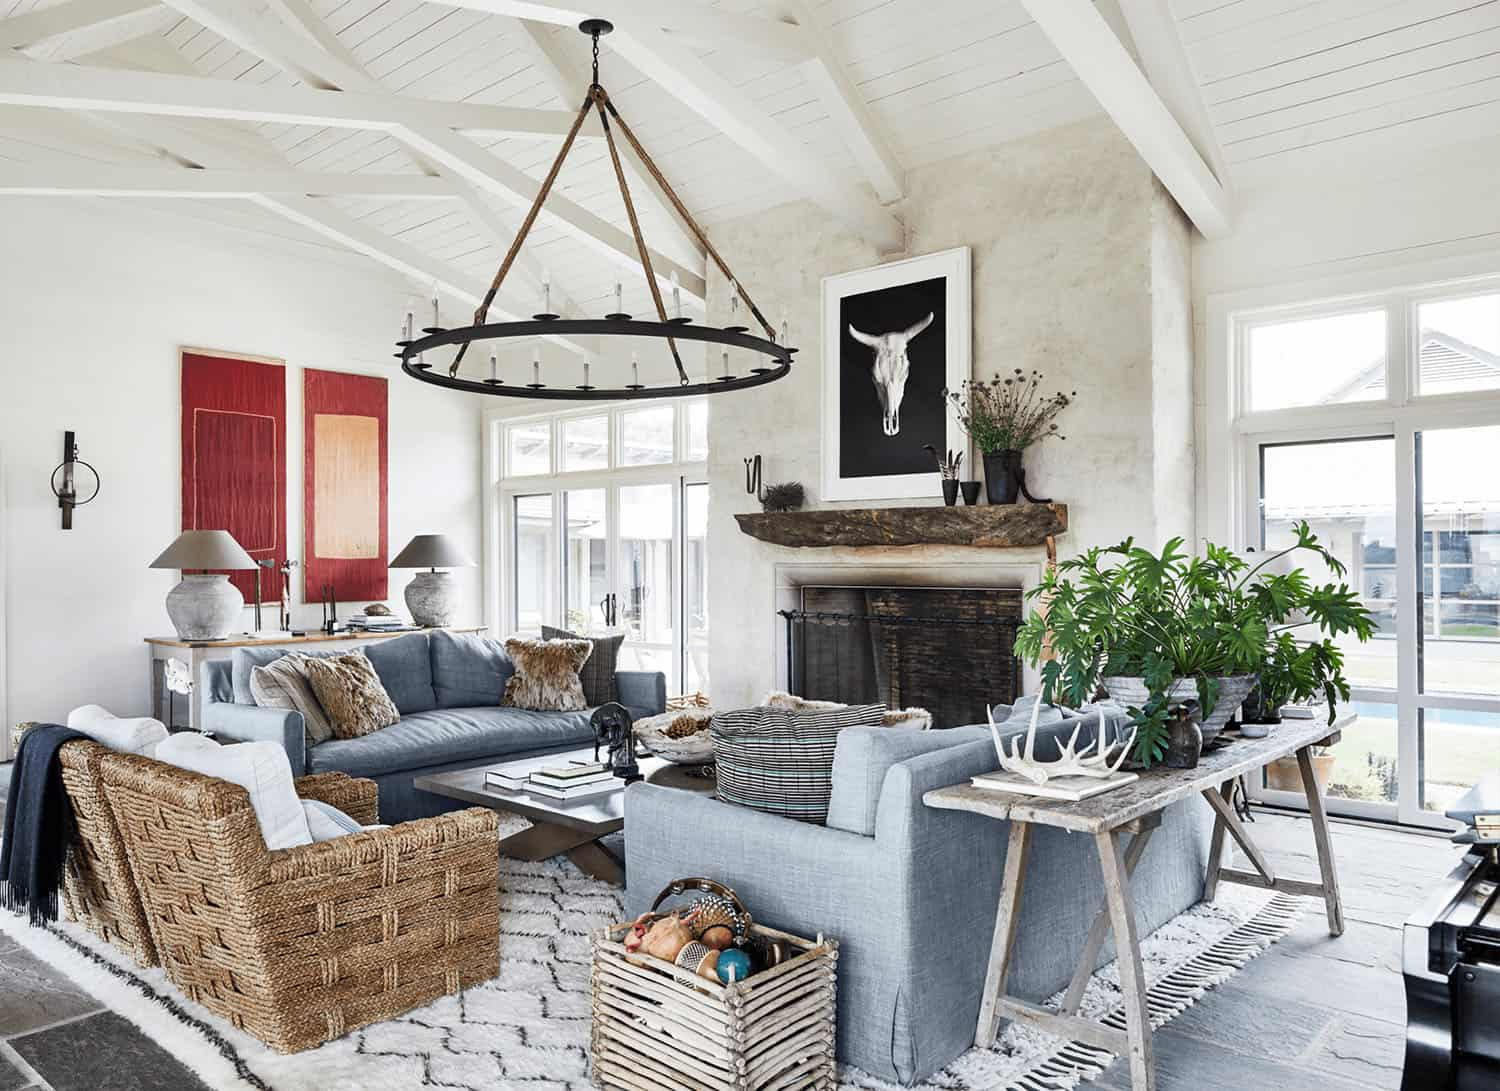 Tour an absolutely stunning farmhouse renovation in the Texas countryside